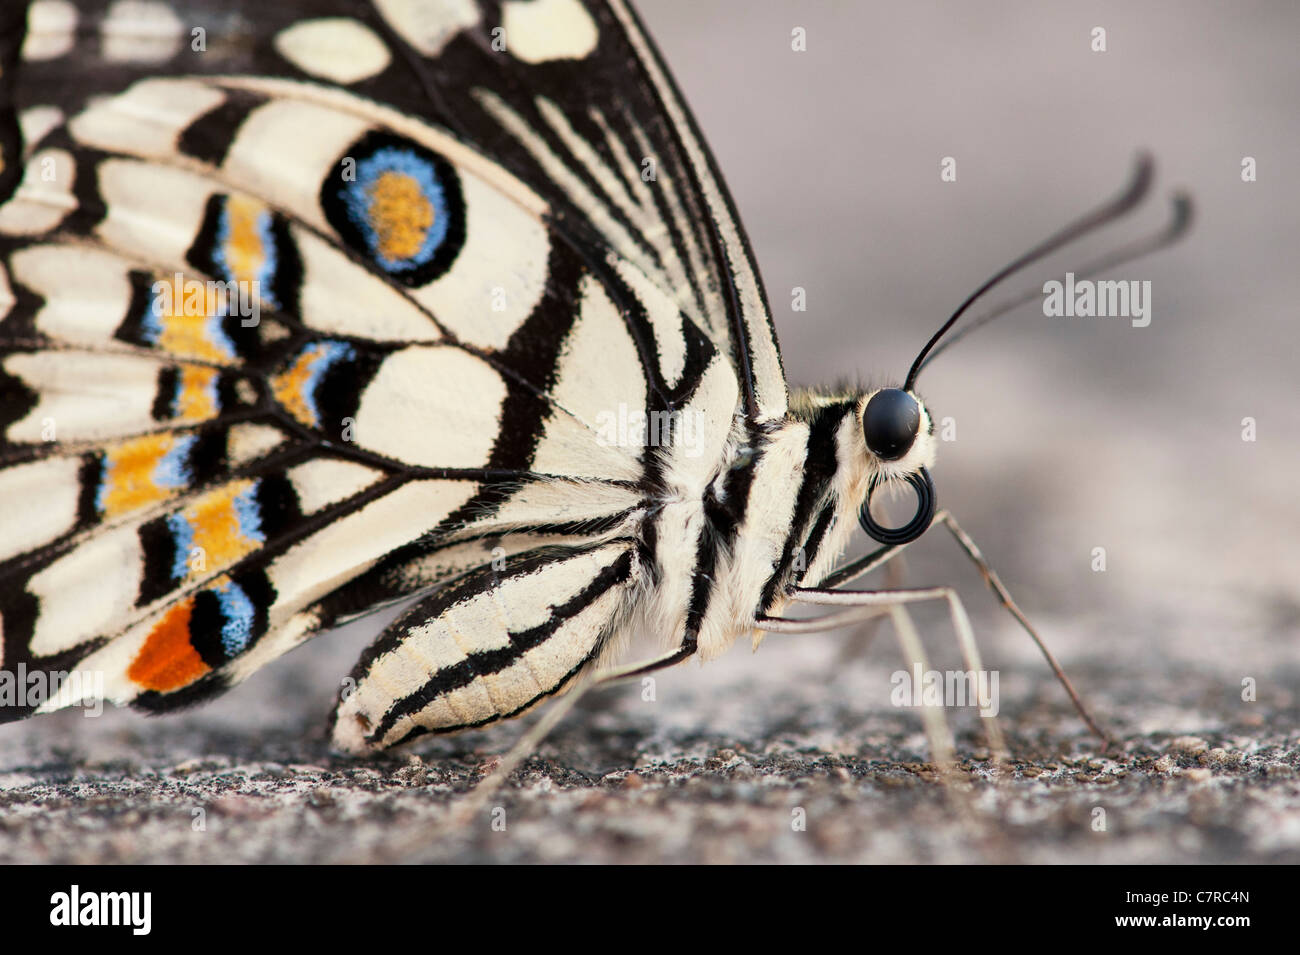 Papilio demoleus . Papillon de chaux Photo Stock